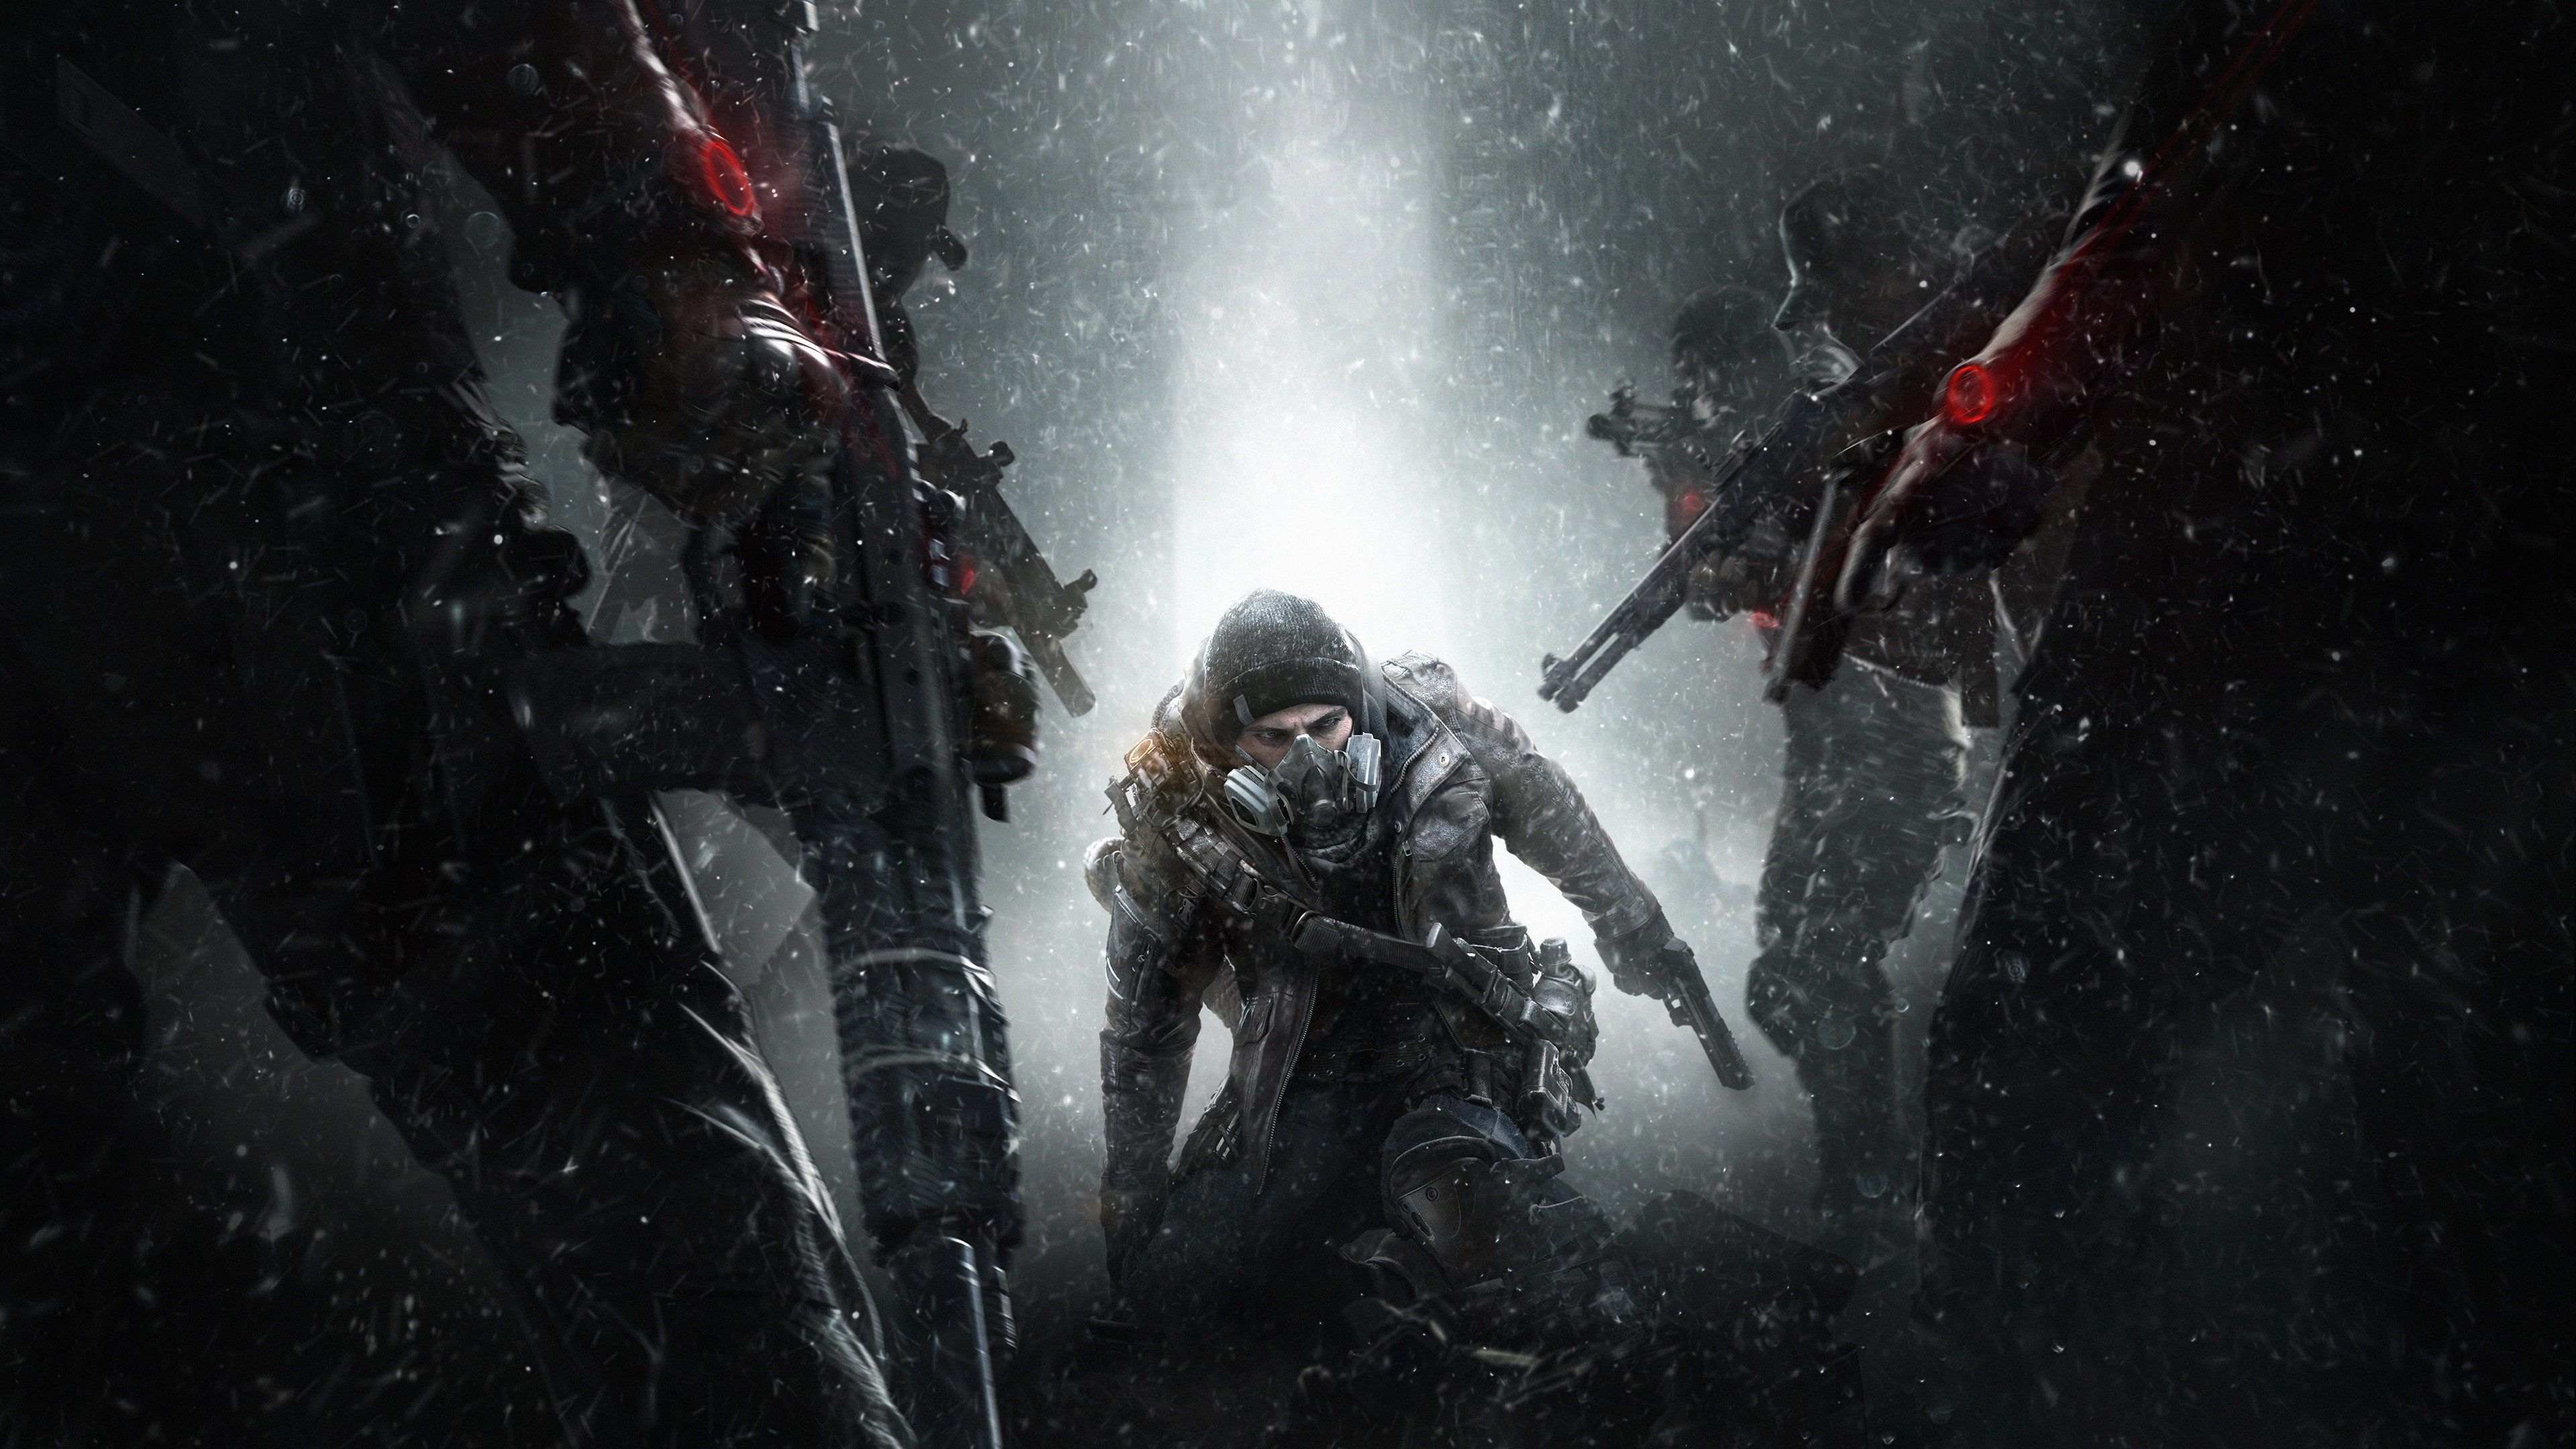 4k Wallpapers World War Z Game: Wallpaper Tom Clancy's The Division Survival, PS4, PC